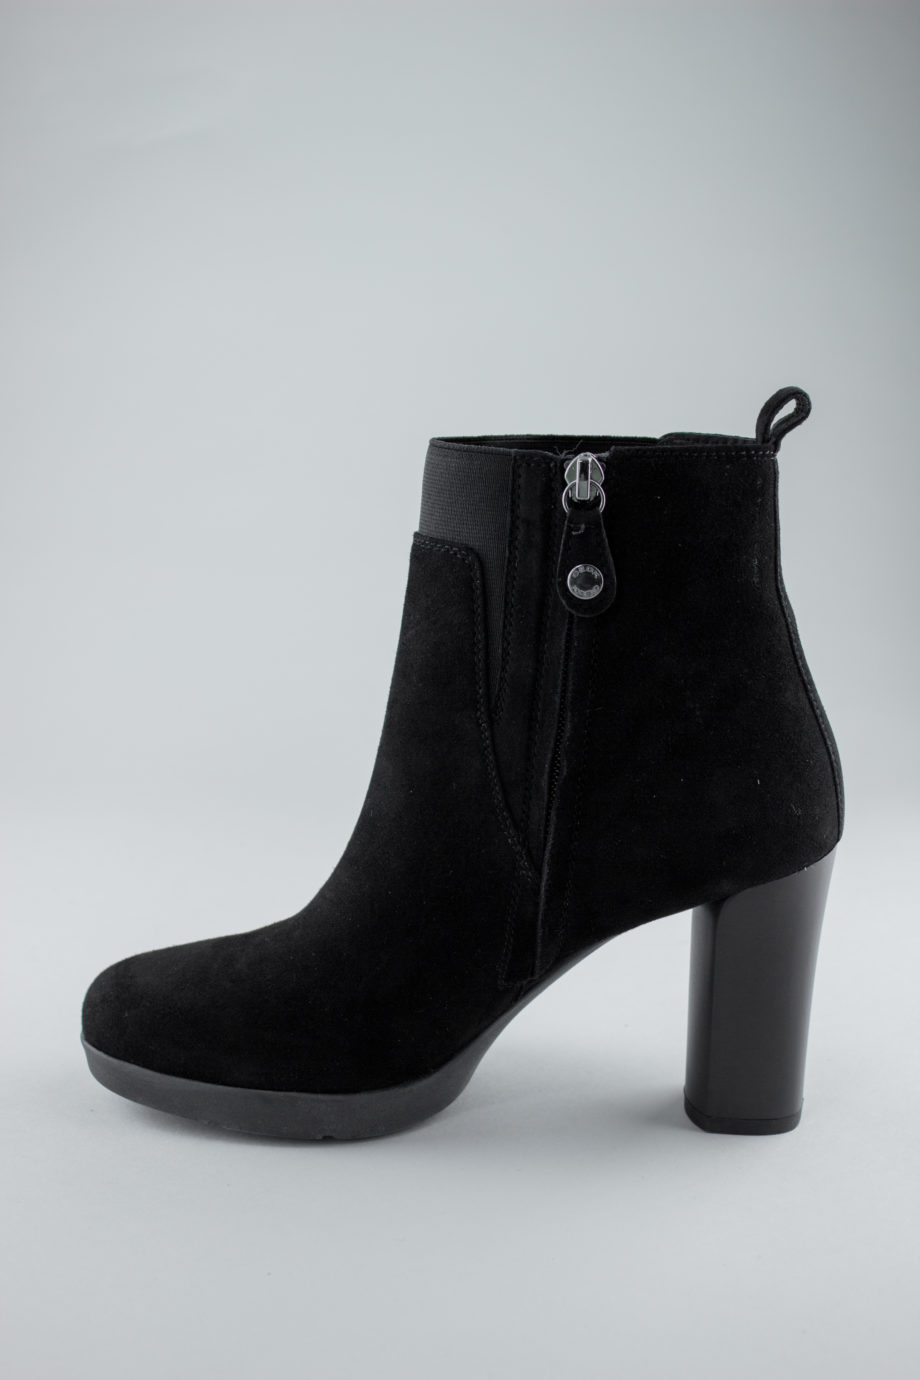 Geox anylla ankle boots